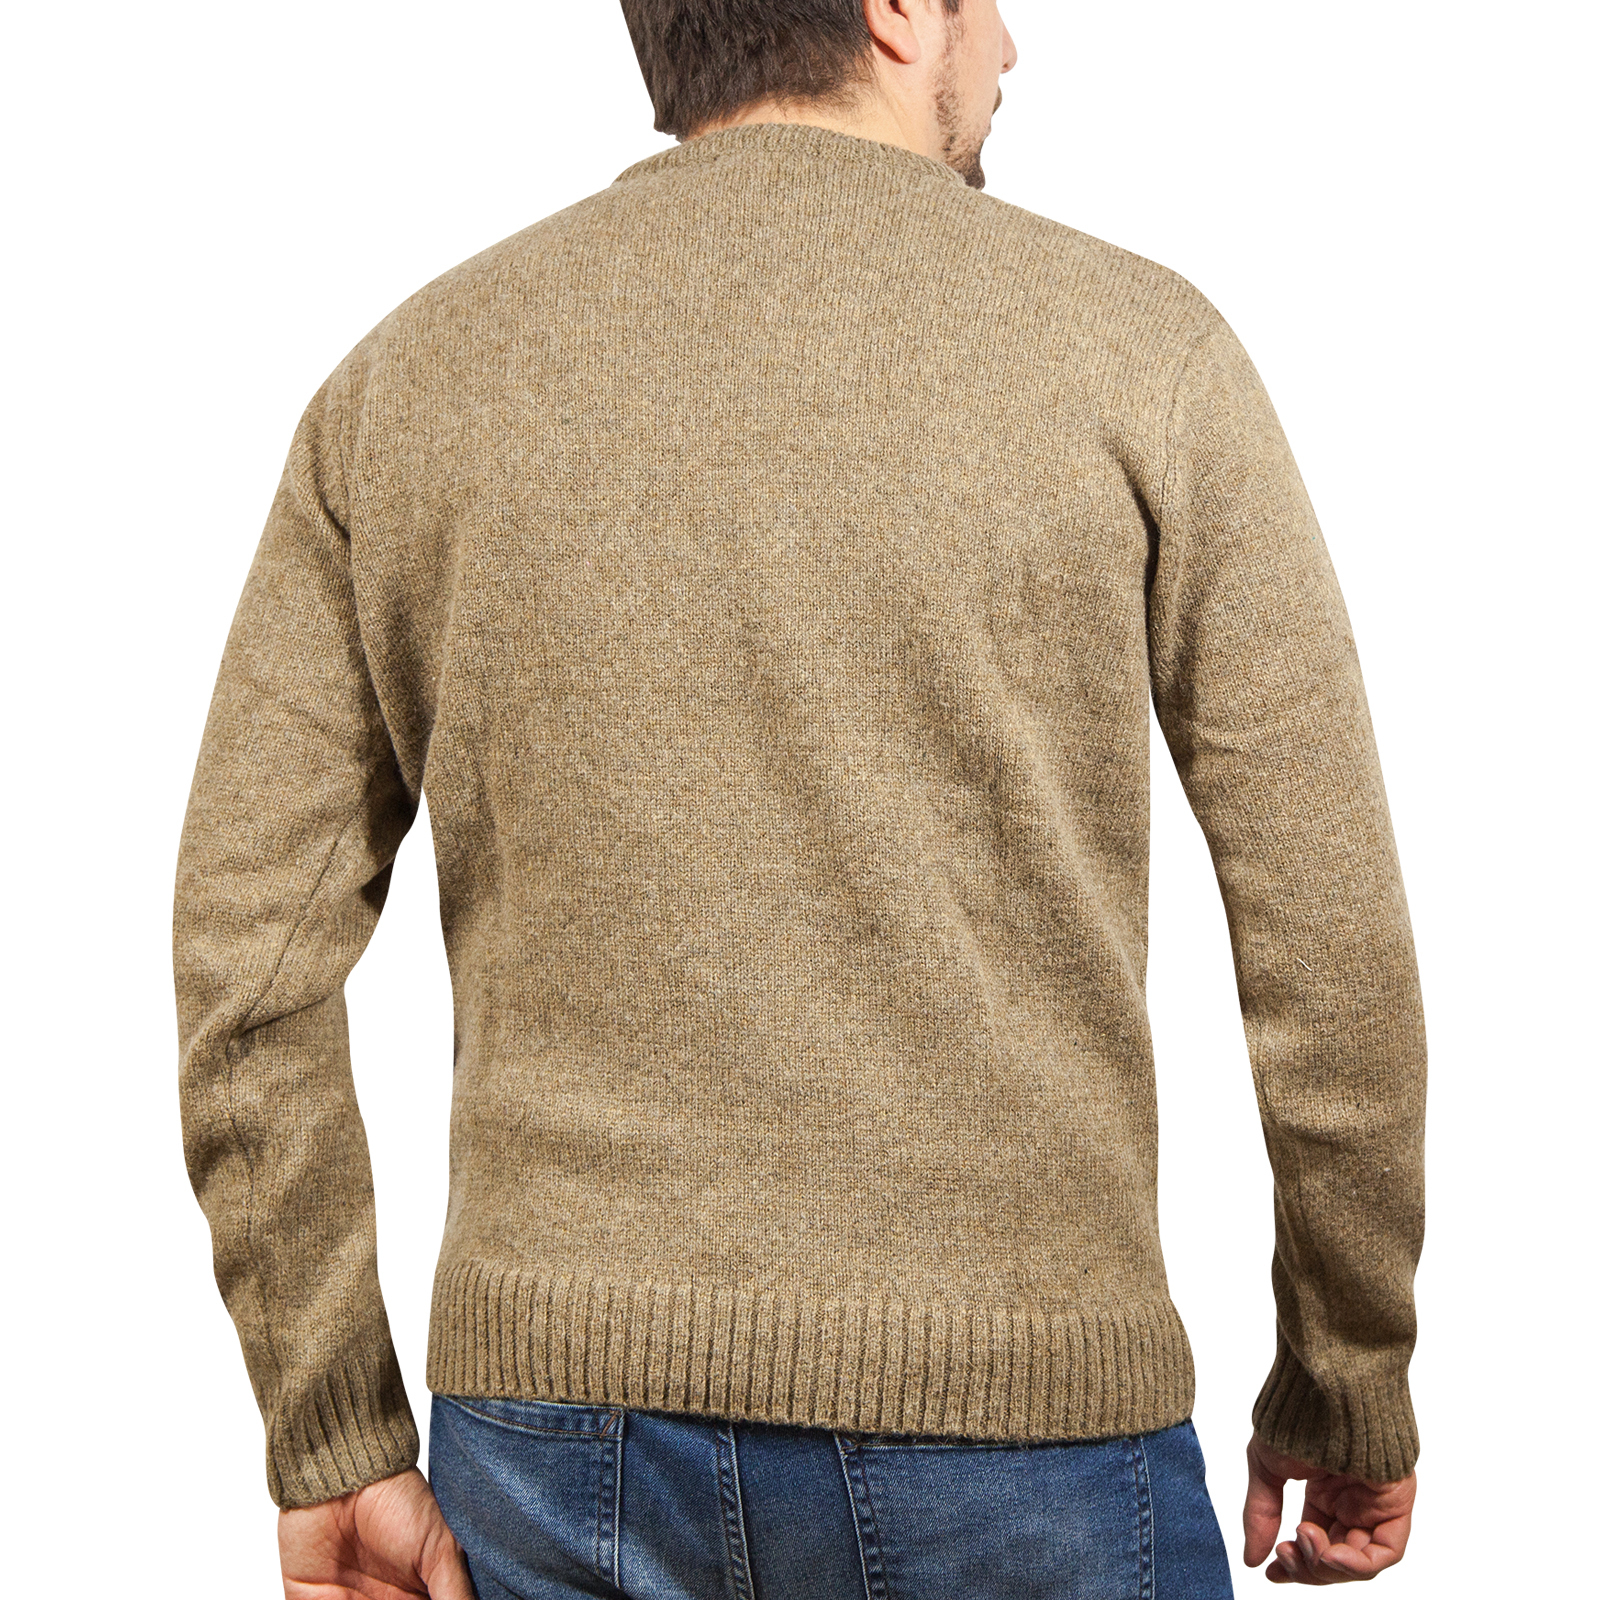 100-SHETLAND-WOOL-CREW-Round-Neck-Knit-JUMPER-Pullover-Mens-Sweater-Knitted-New thumbnail 109